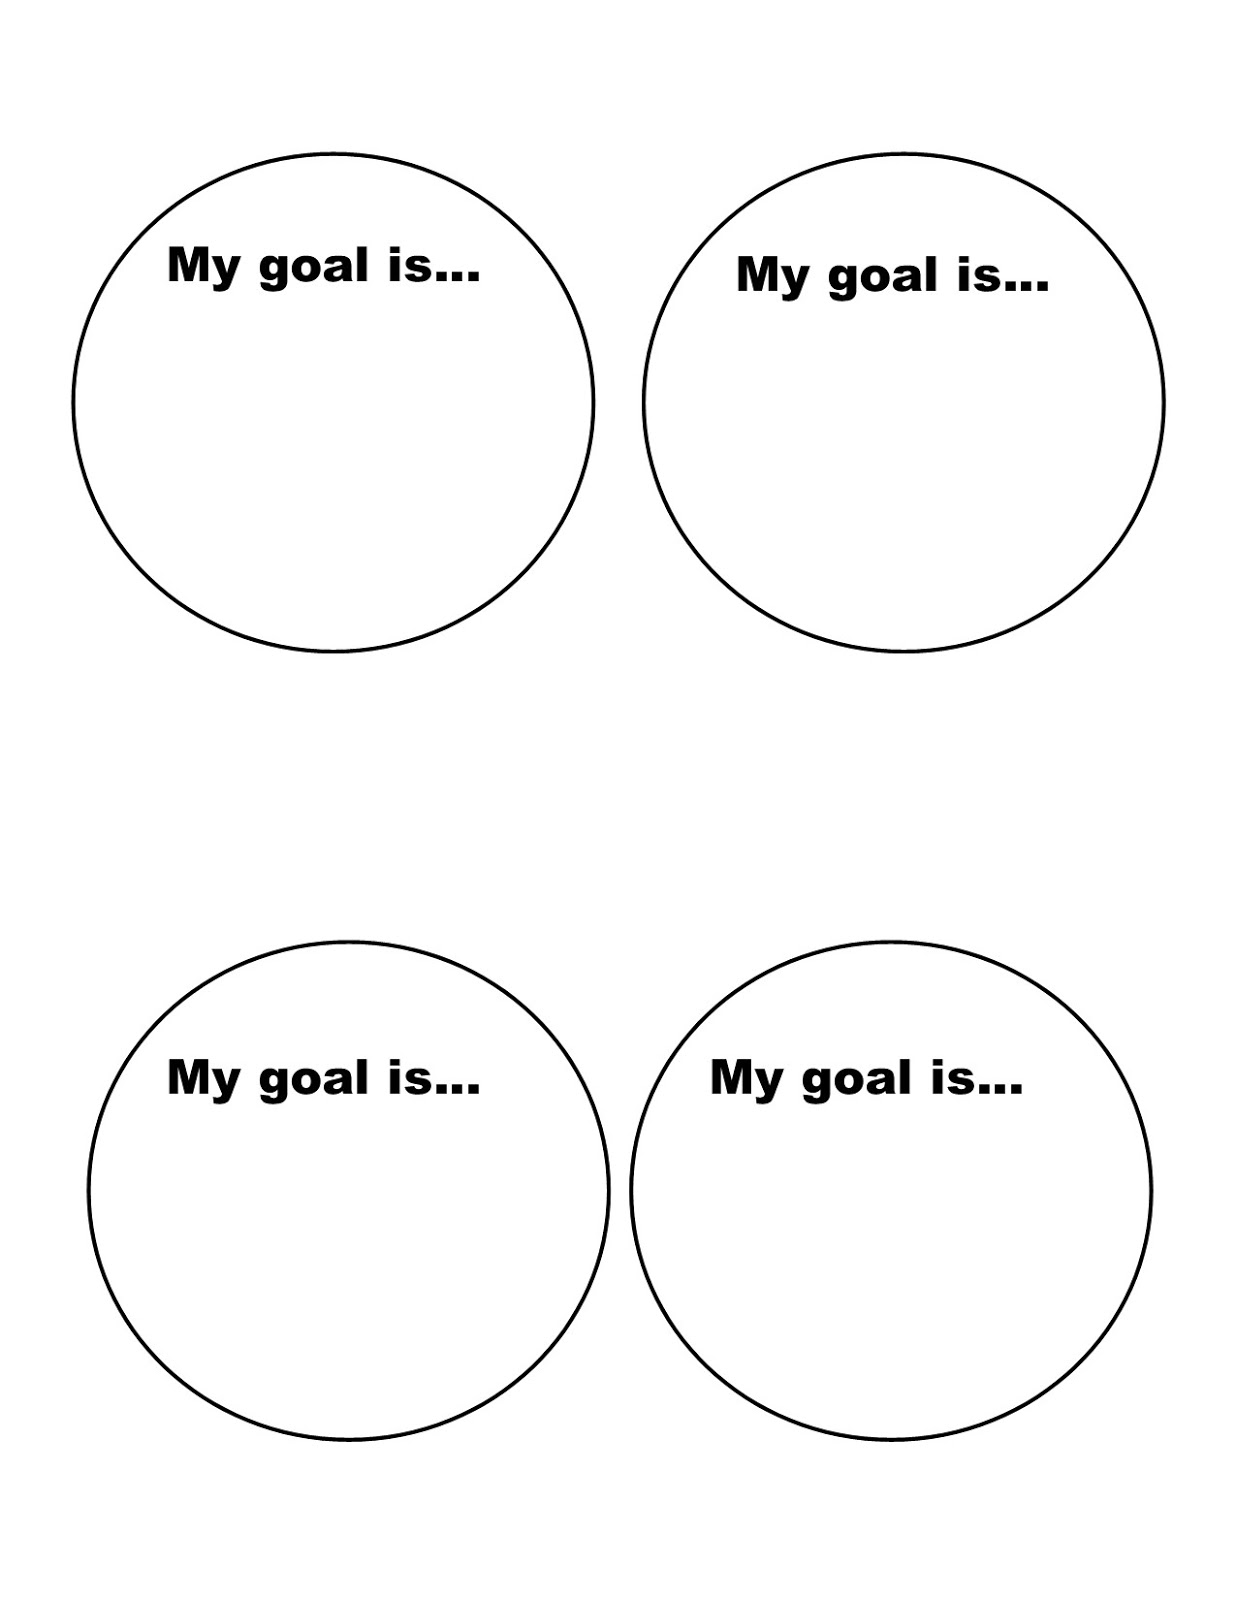 objective setting template - mini monets and mommies kids 39 goal setting art activity